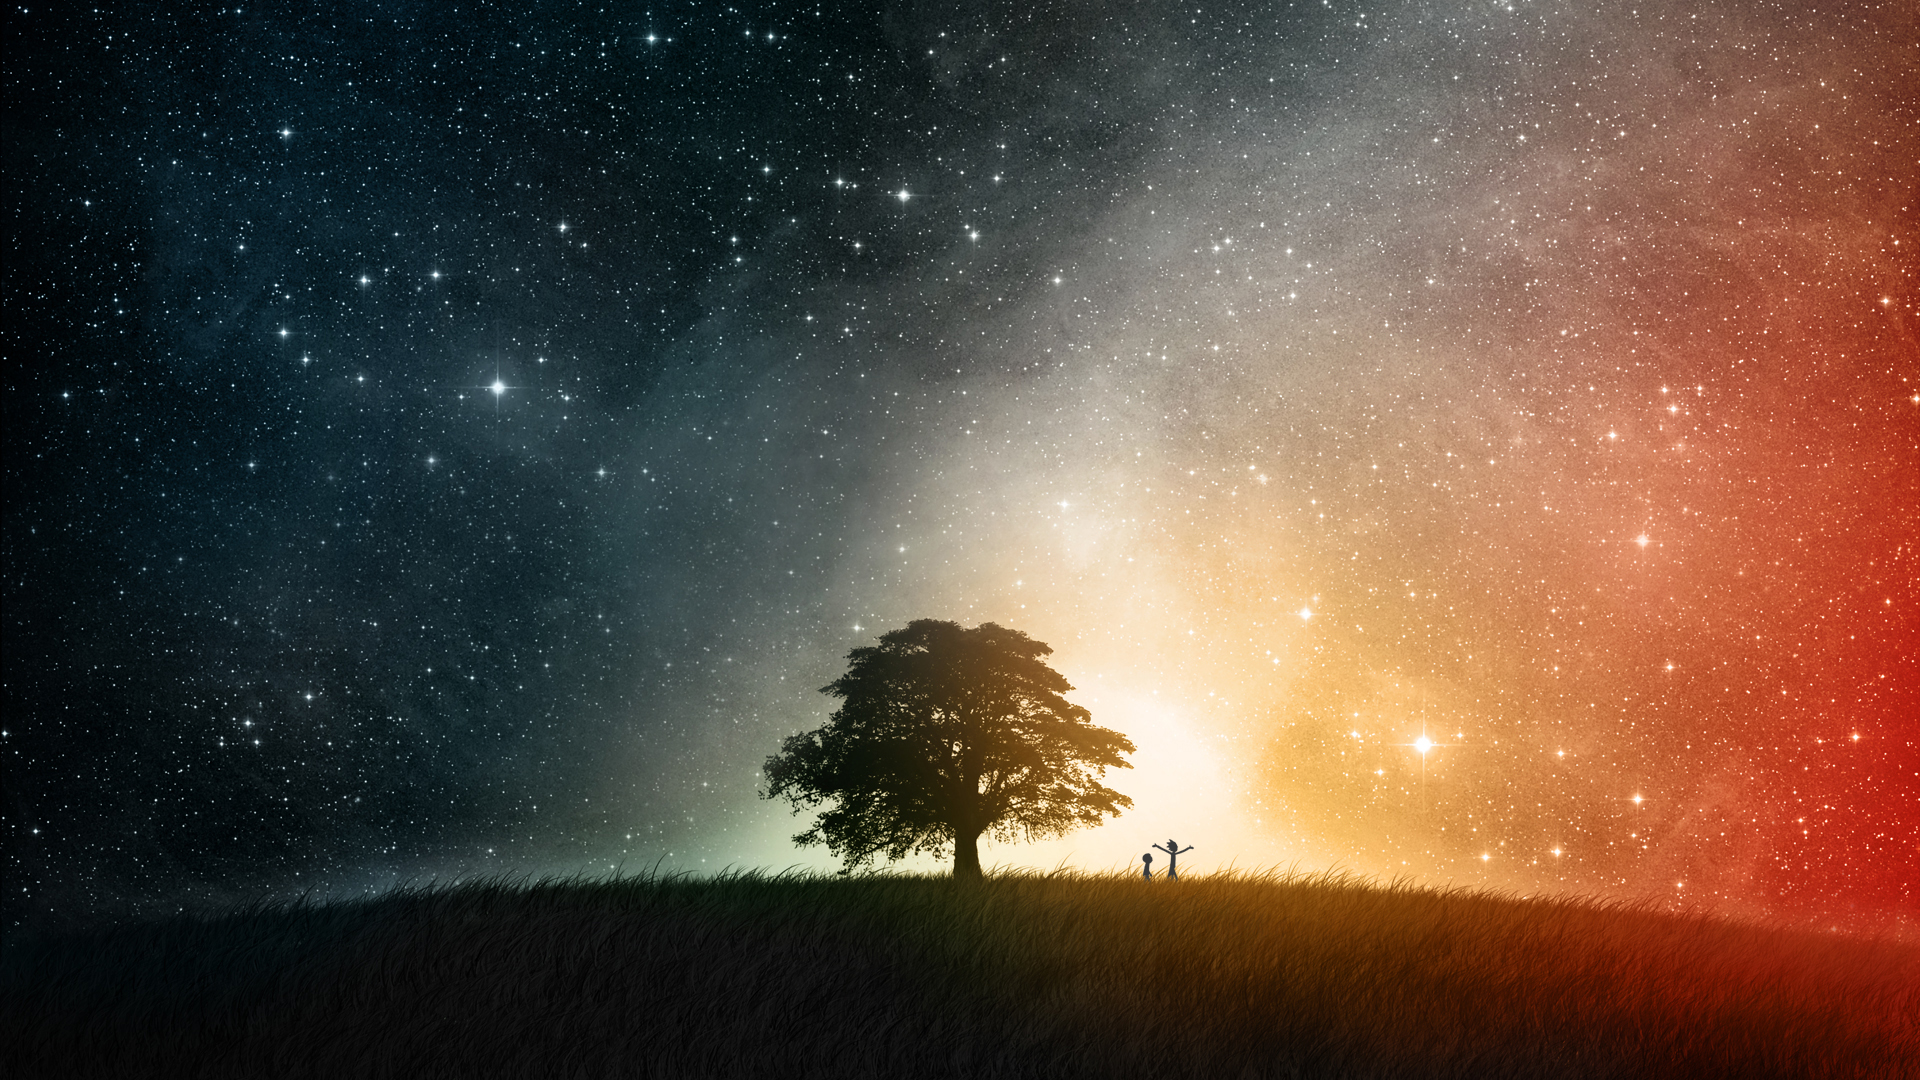 Rick and Morty and that space tree wallpaper. #Followme ...